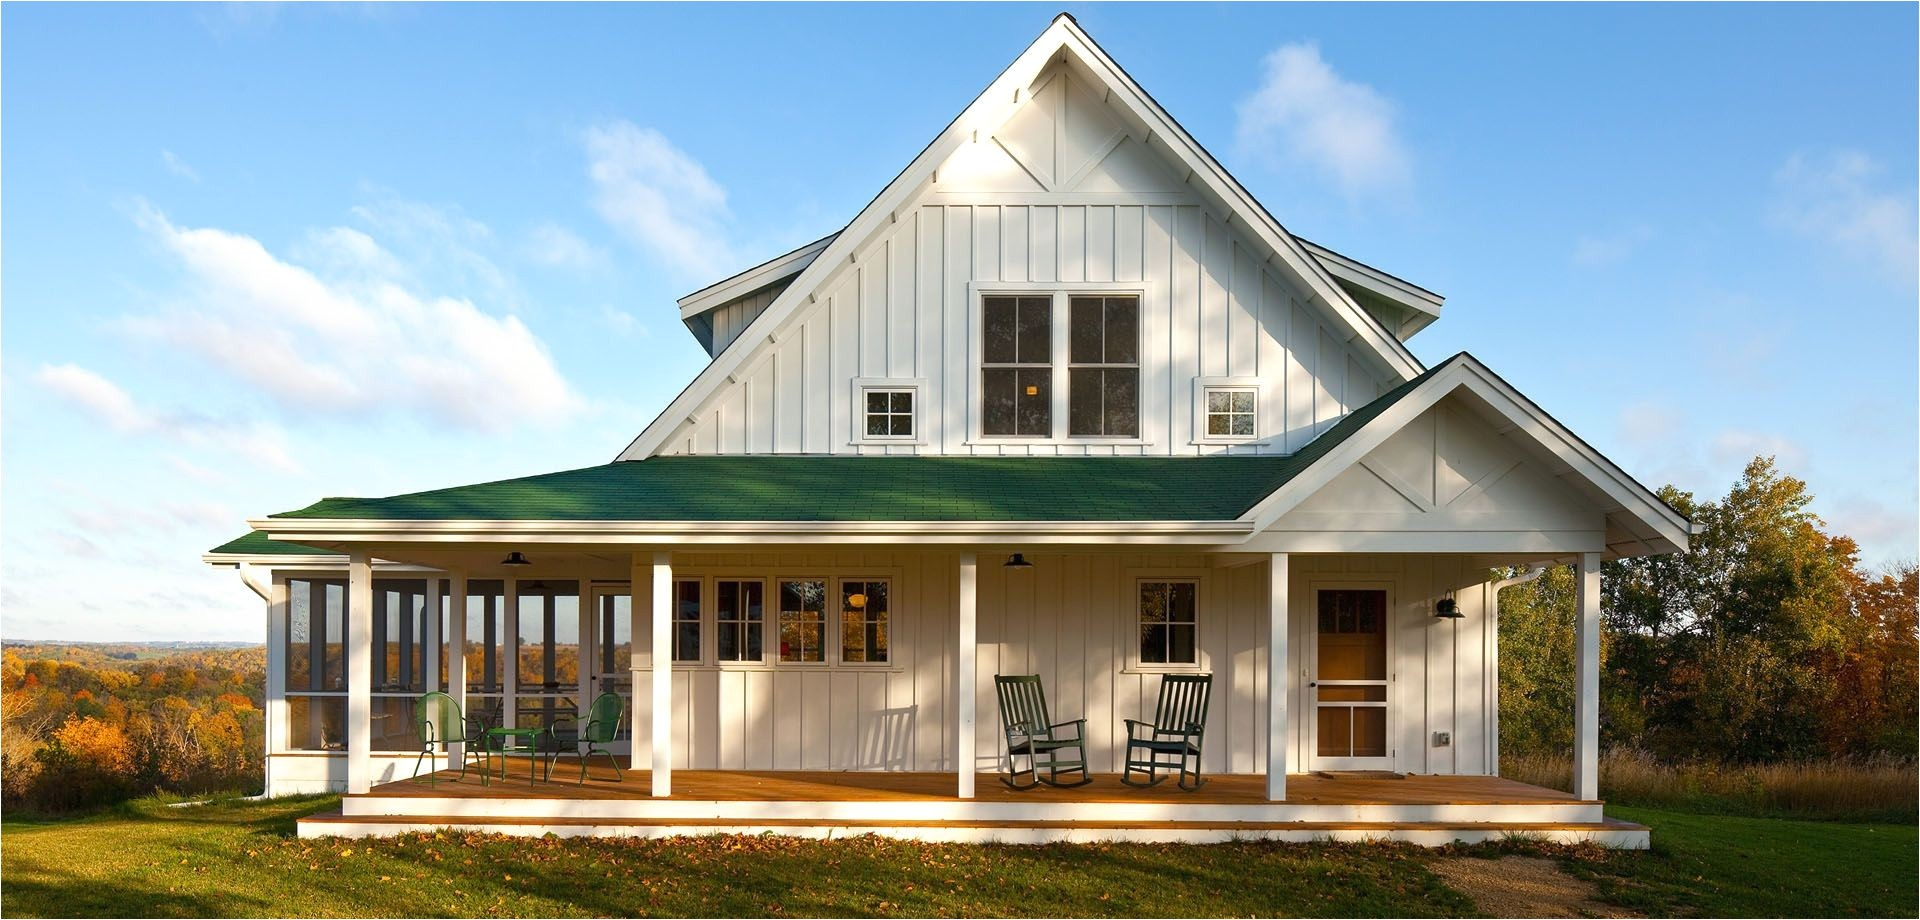 board and batten style house plans